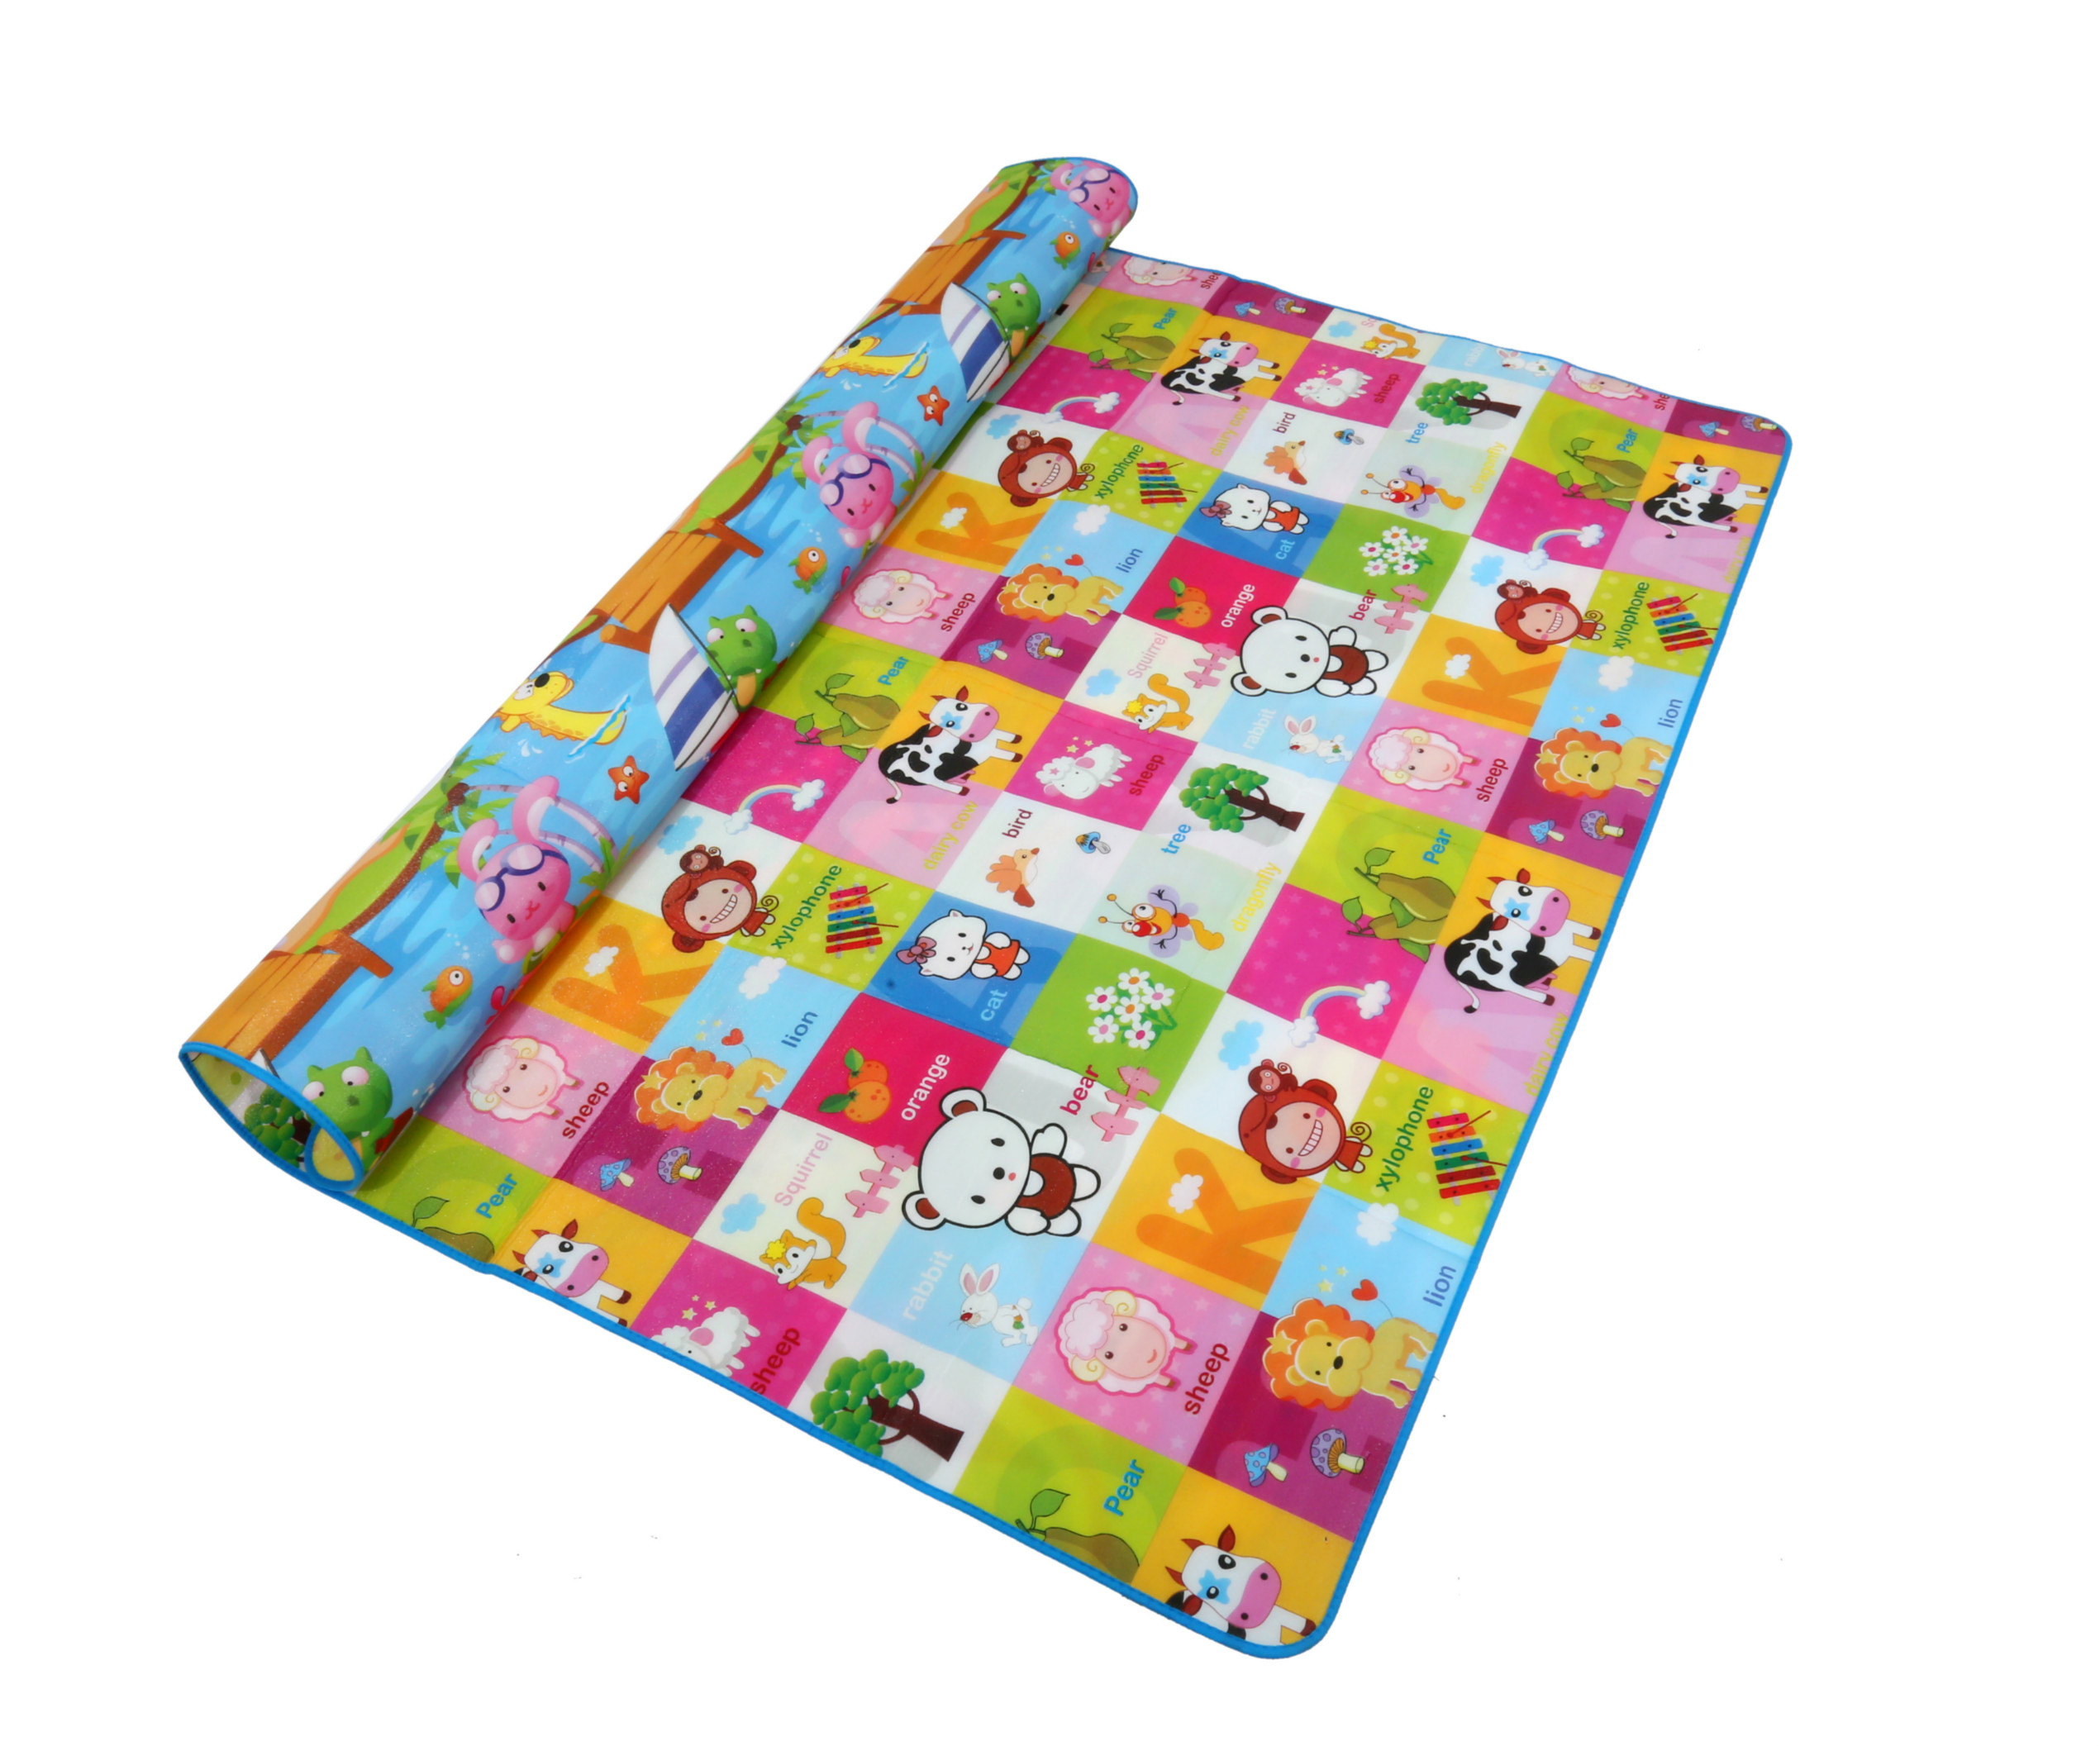 71 215 79 Inches Extra Large Baby Crawling Mat Non Toxic